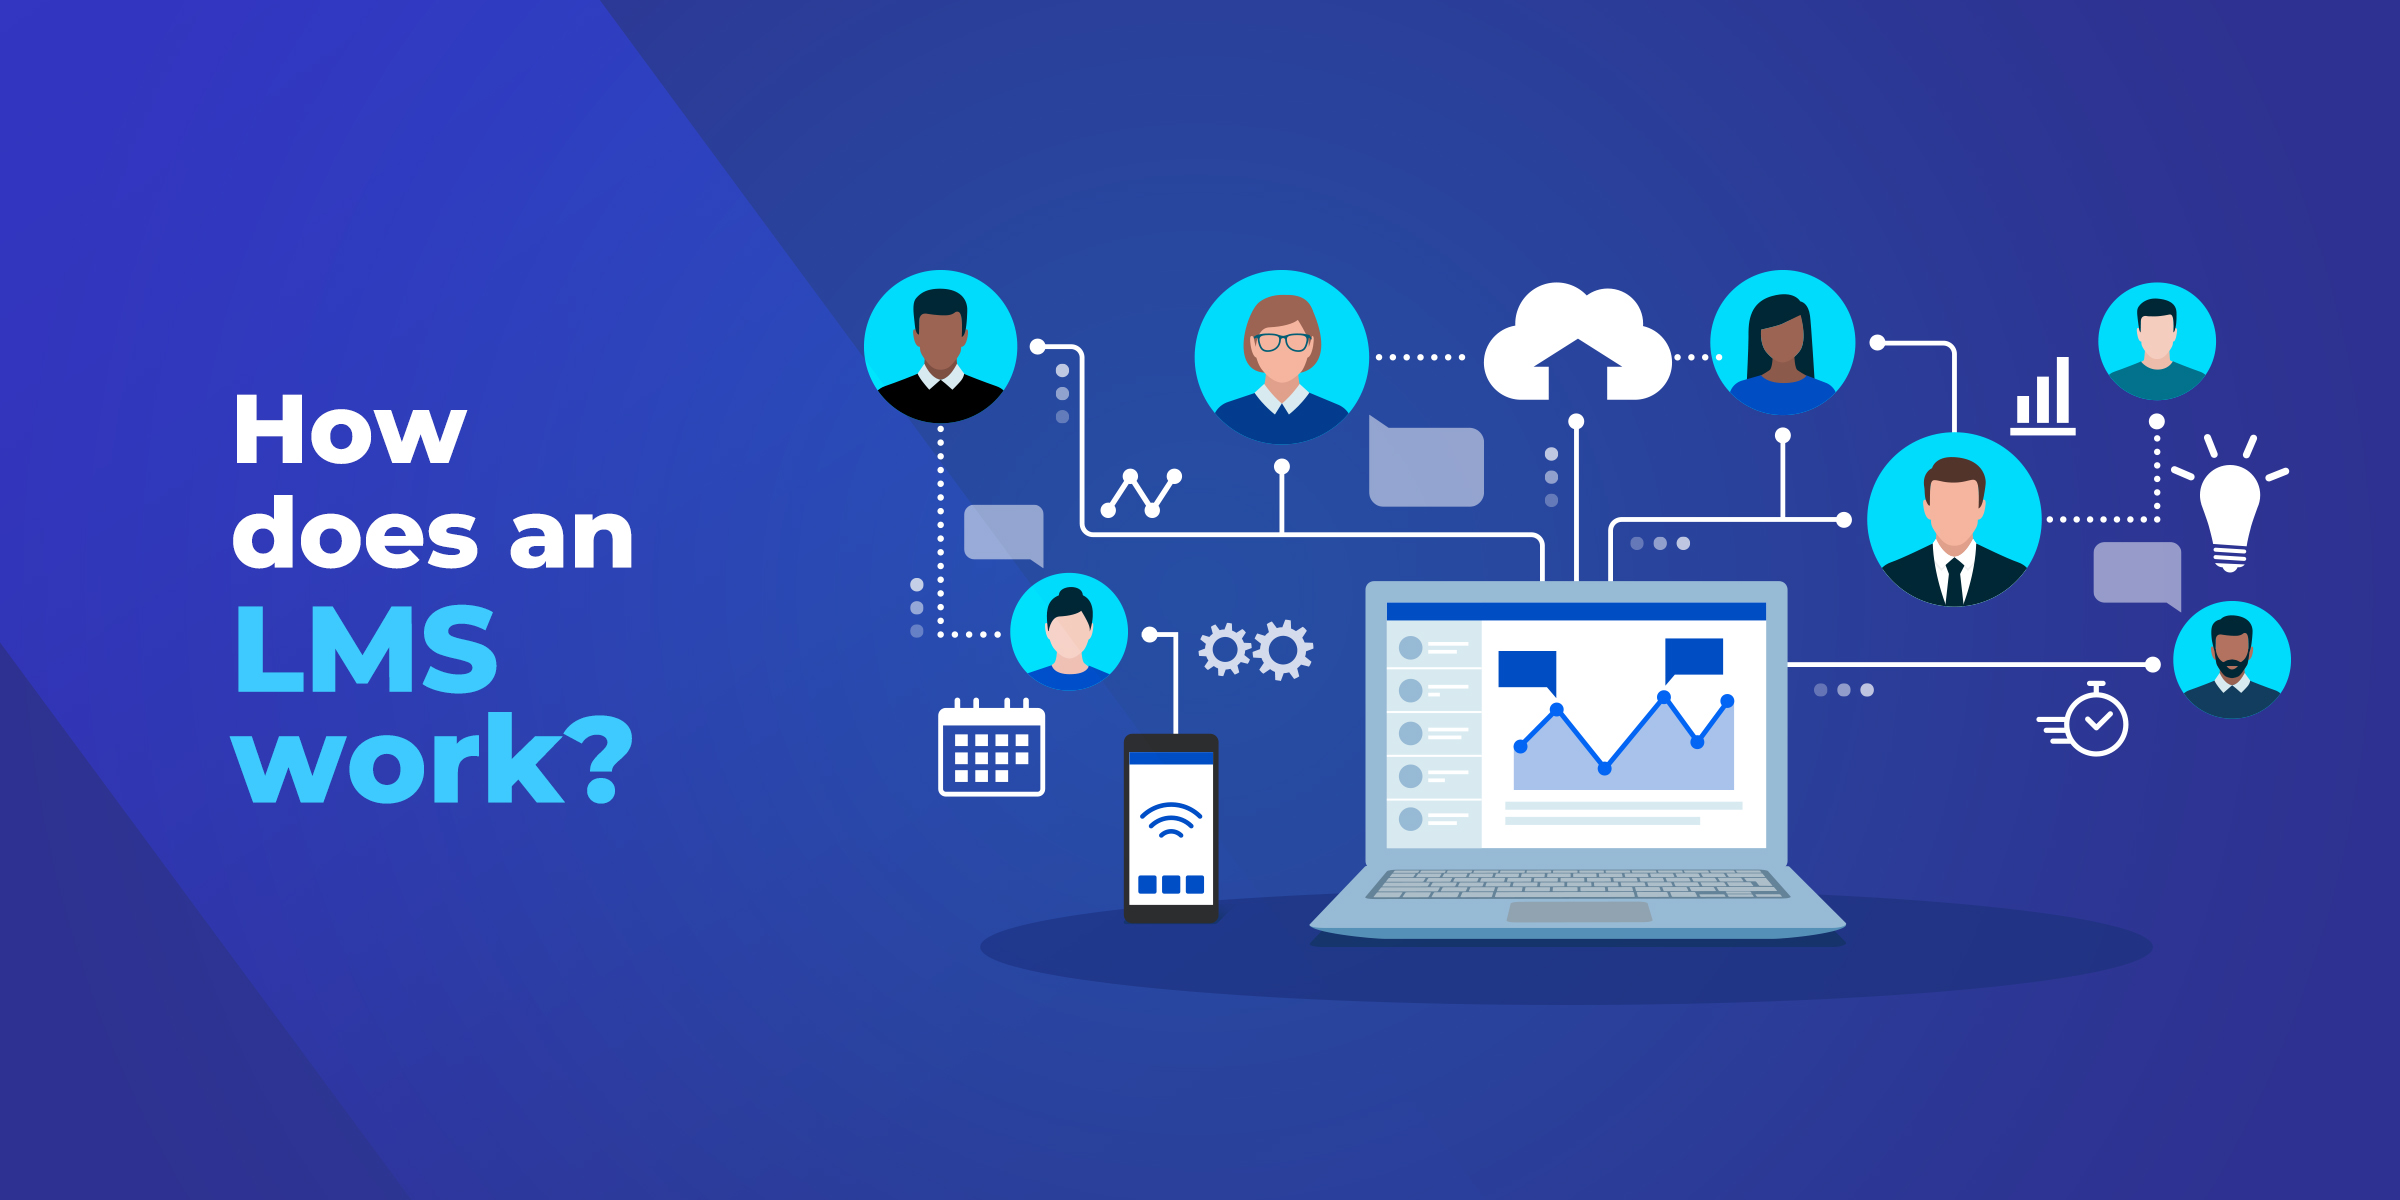 How Does an LMS Work?